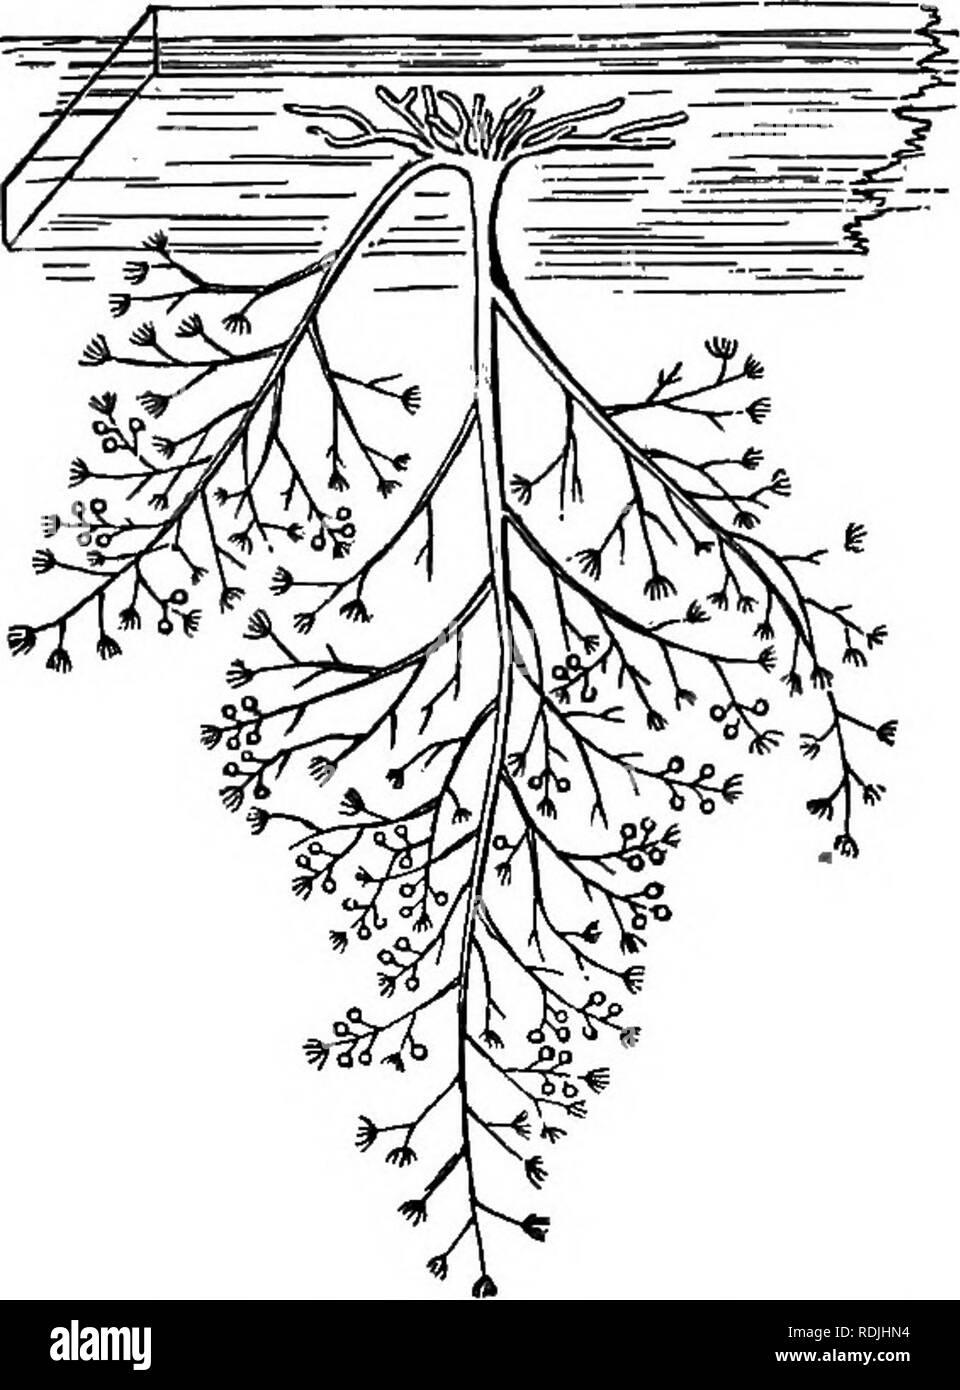 . The beauties of nature and the wonders of the world we live in. Natural history; Physical geography; Astronomy. ON ANIMAL LIFE 107 dusae in all stages of development (Fig. 3), some still in the condition of minute buds, in which no trace of the definite Medusa-form can yet. Fig. 2. — Bougainvilleafruticoaa; natural size. (After AUman.) be detected; others, in which the outlines of the Medusa can be distinctly traced within the transparent ectotheque (external layer); others, again, just casting off this thin outer pellicle, and others completely freed from it, struggling with convulsive effo - Stock Image